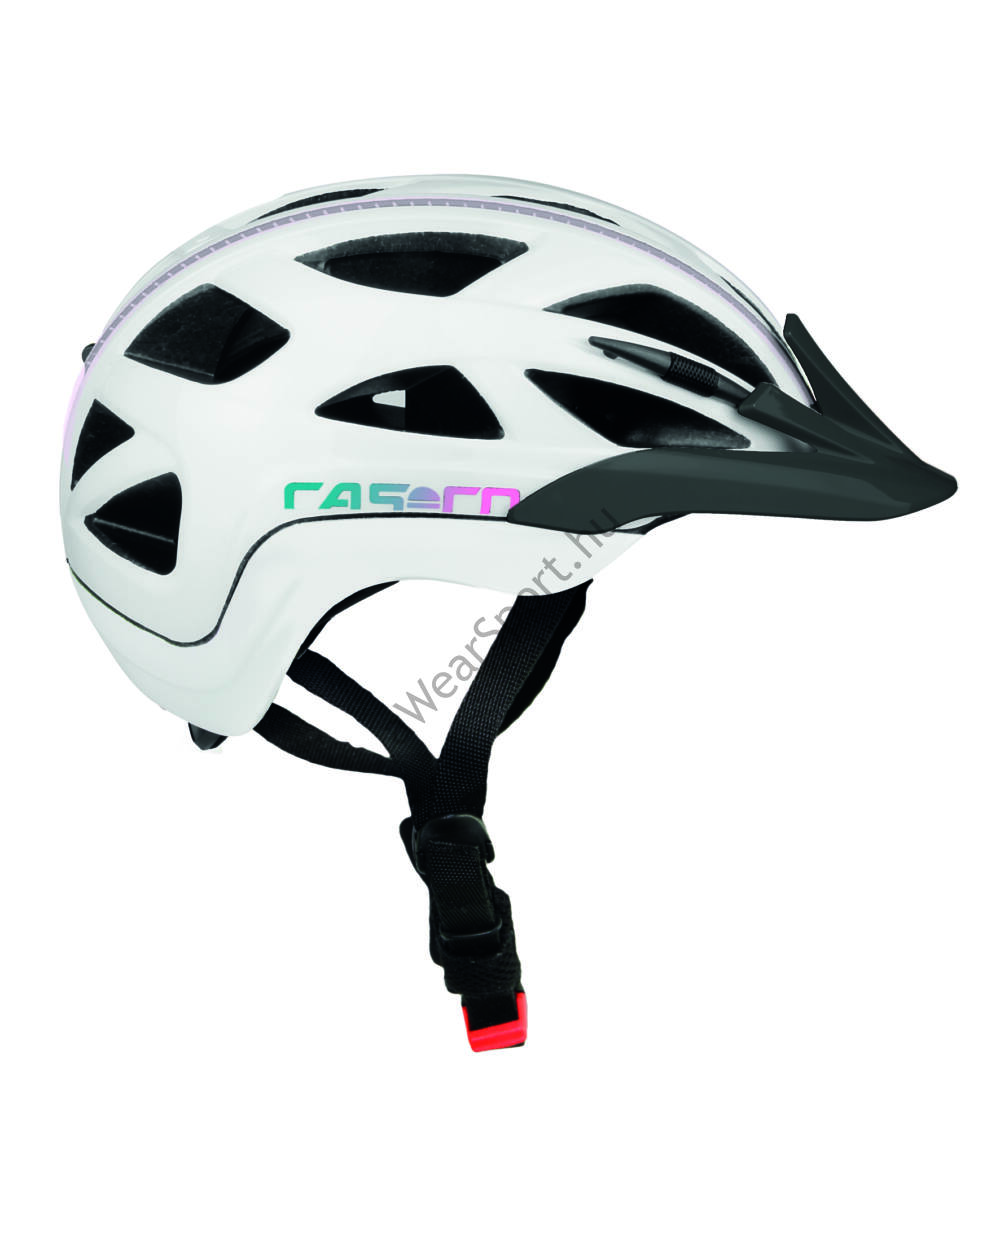 Casco Activ 2 Lady white-blue bukósisak, 56-58 cm